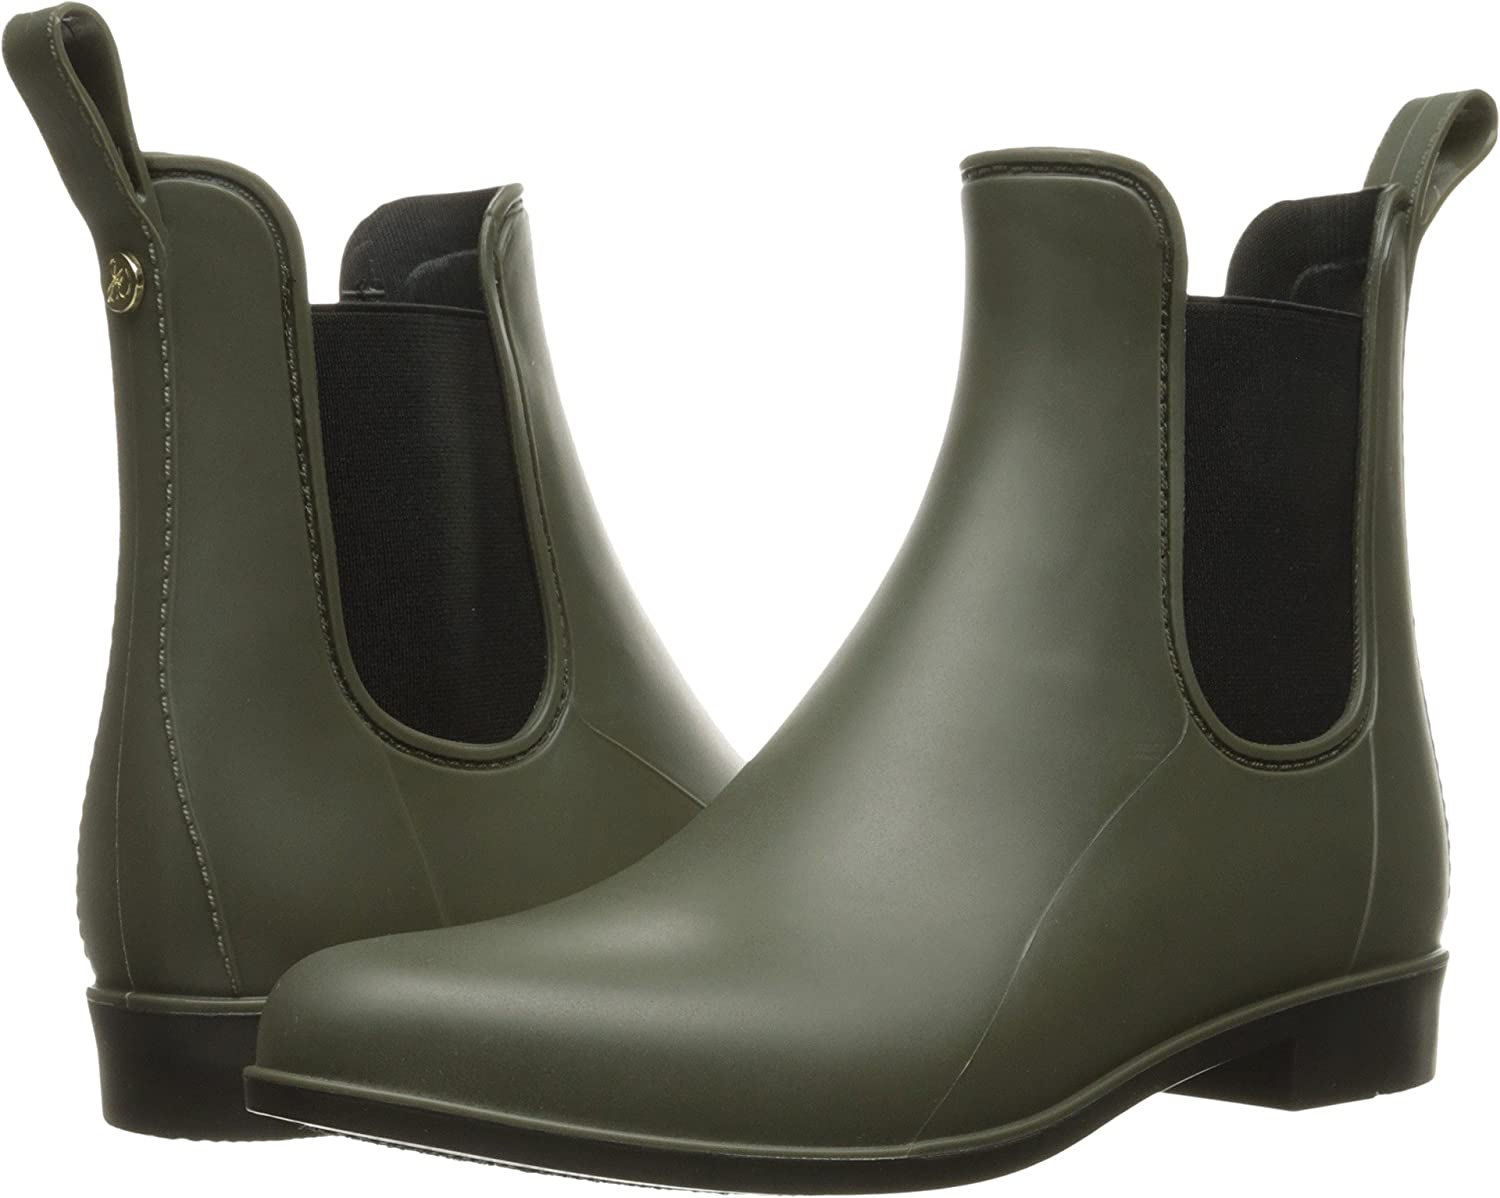 Sam Edelman Women's Tinsley Rain Boot B079CHGLM1 9 W US|Moss Green